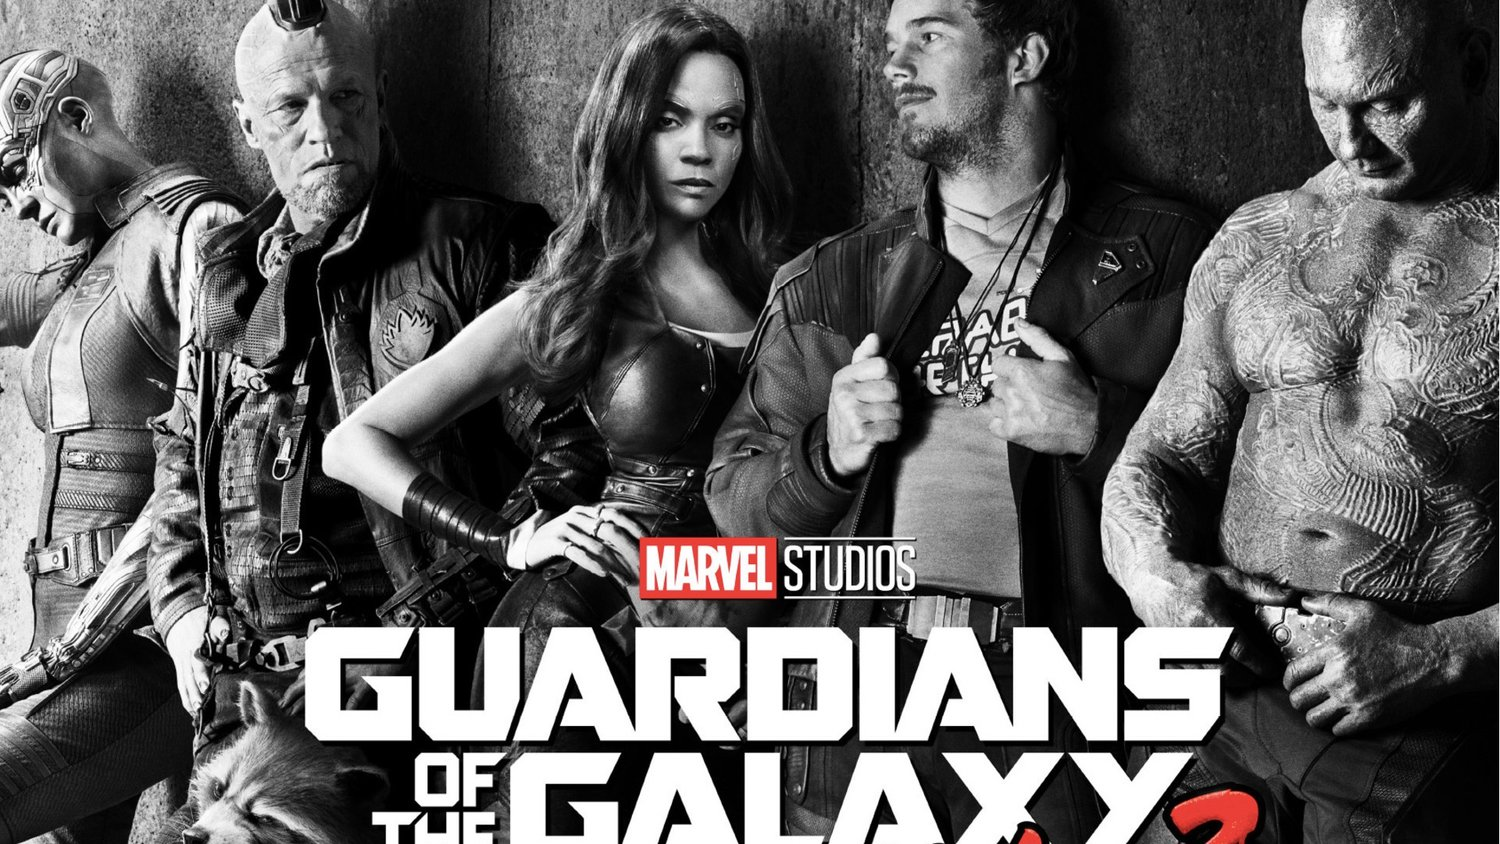 The GUARDIANS OF THE GALAXY Will Be Even Bigger A-holes in VOL. 2